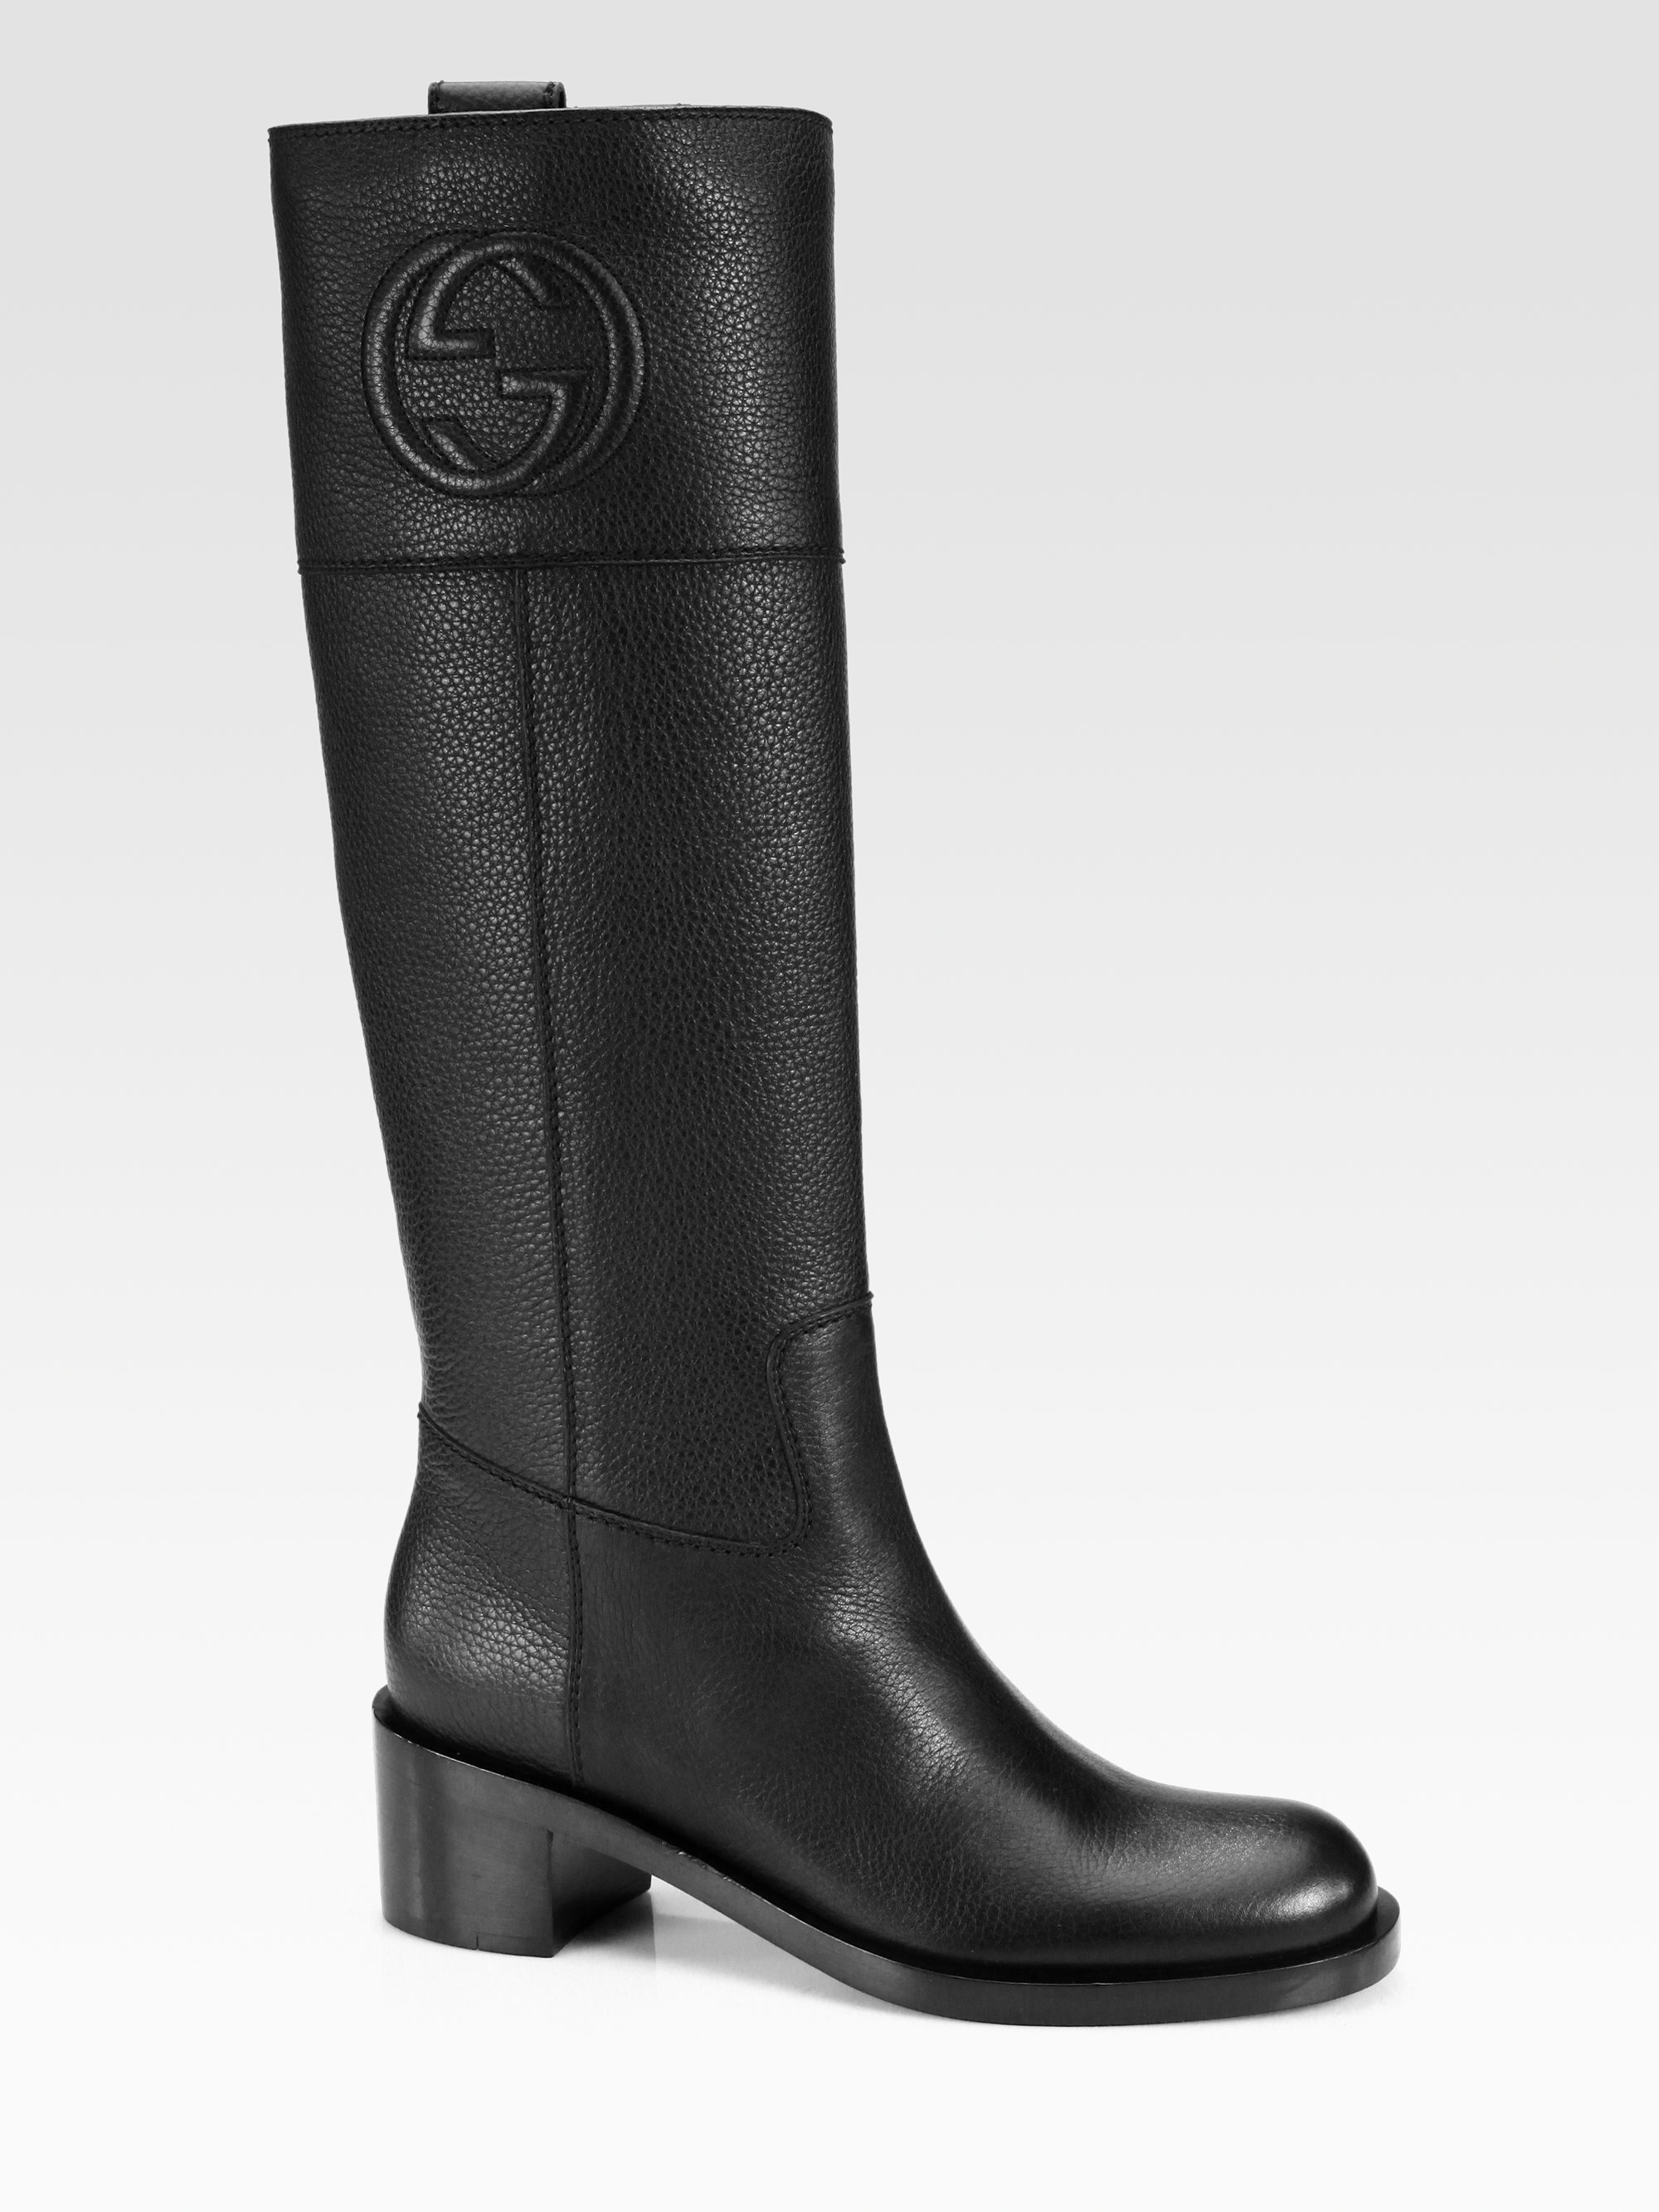 Gucci Soho Leather Boots in Black